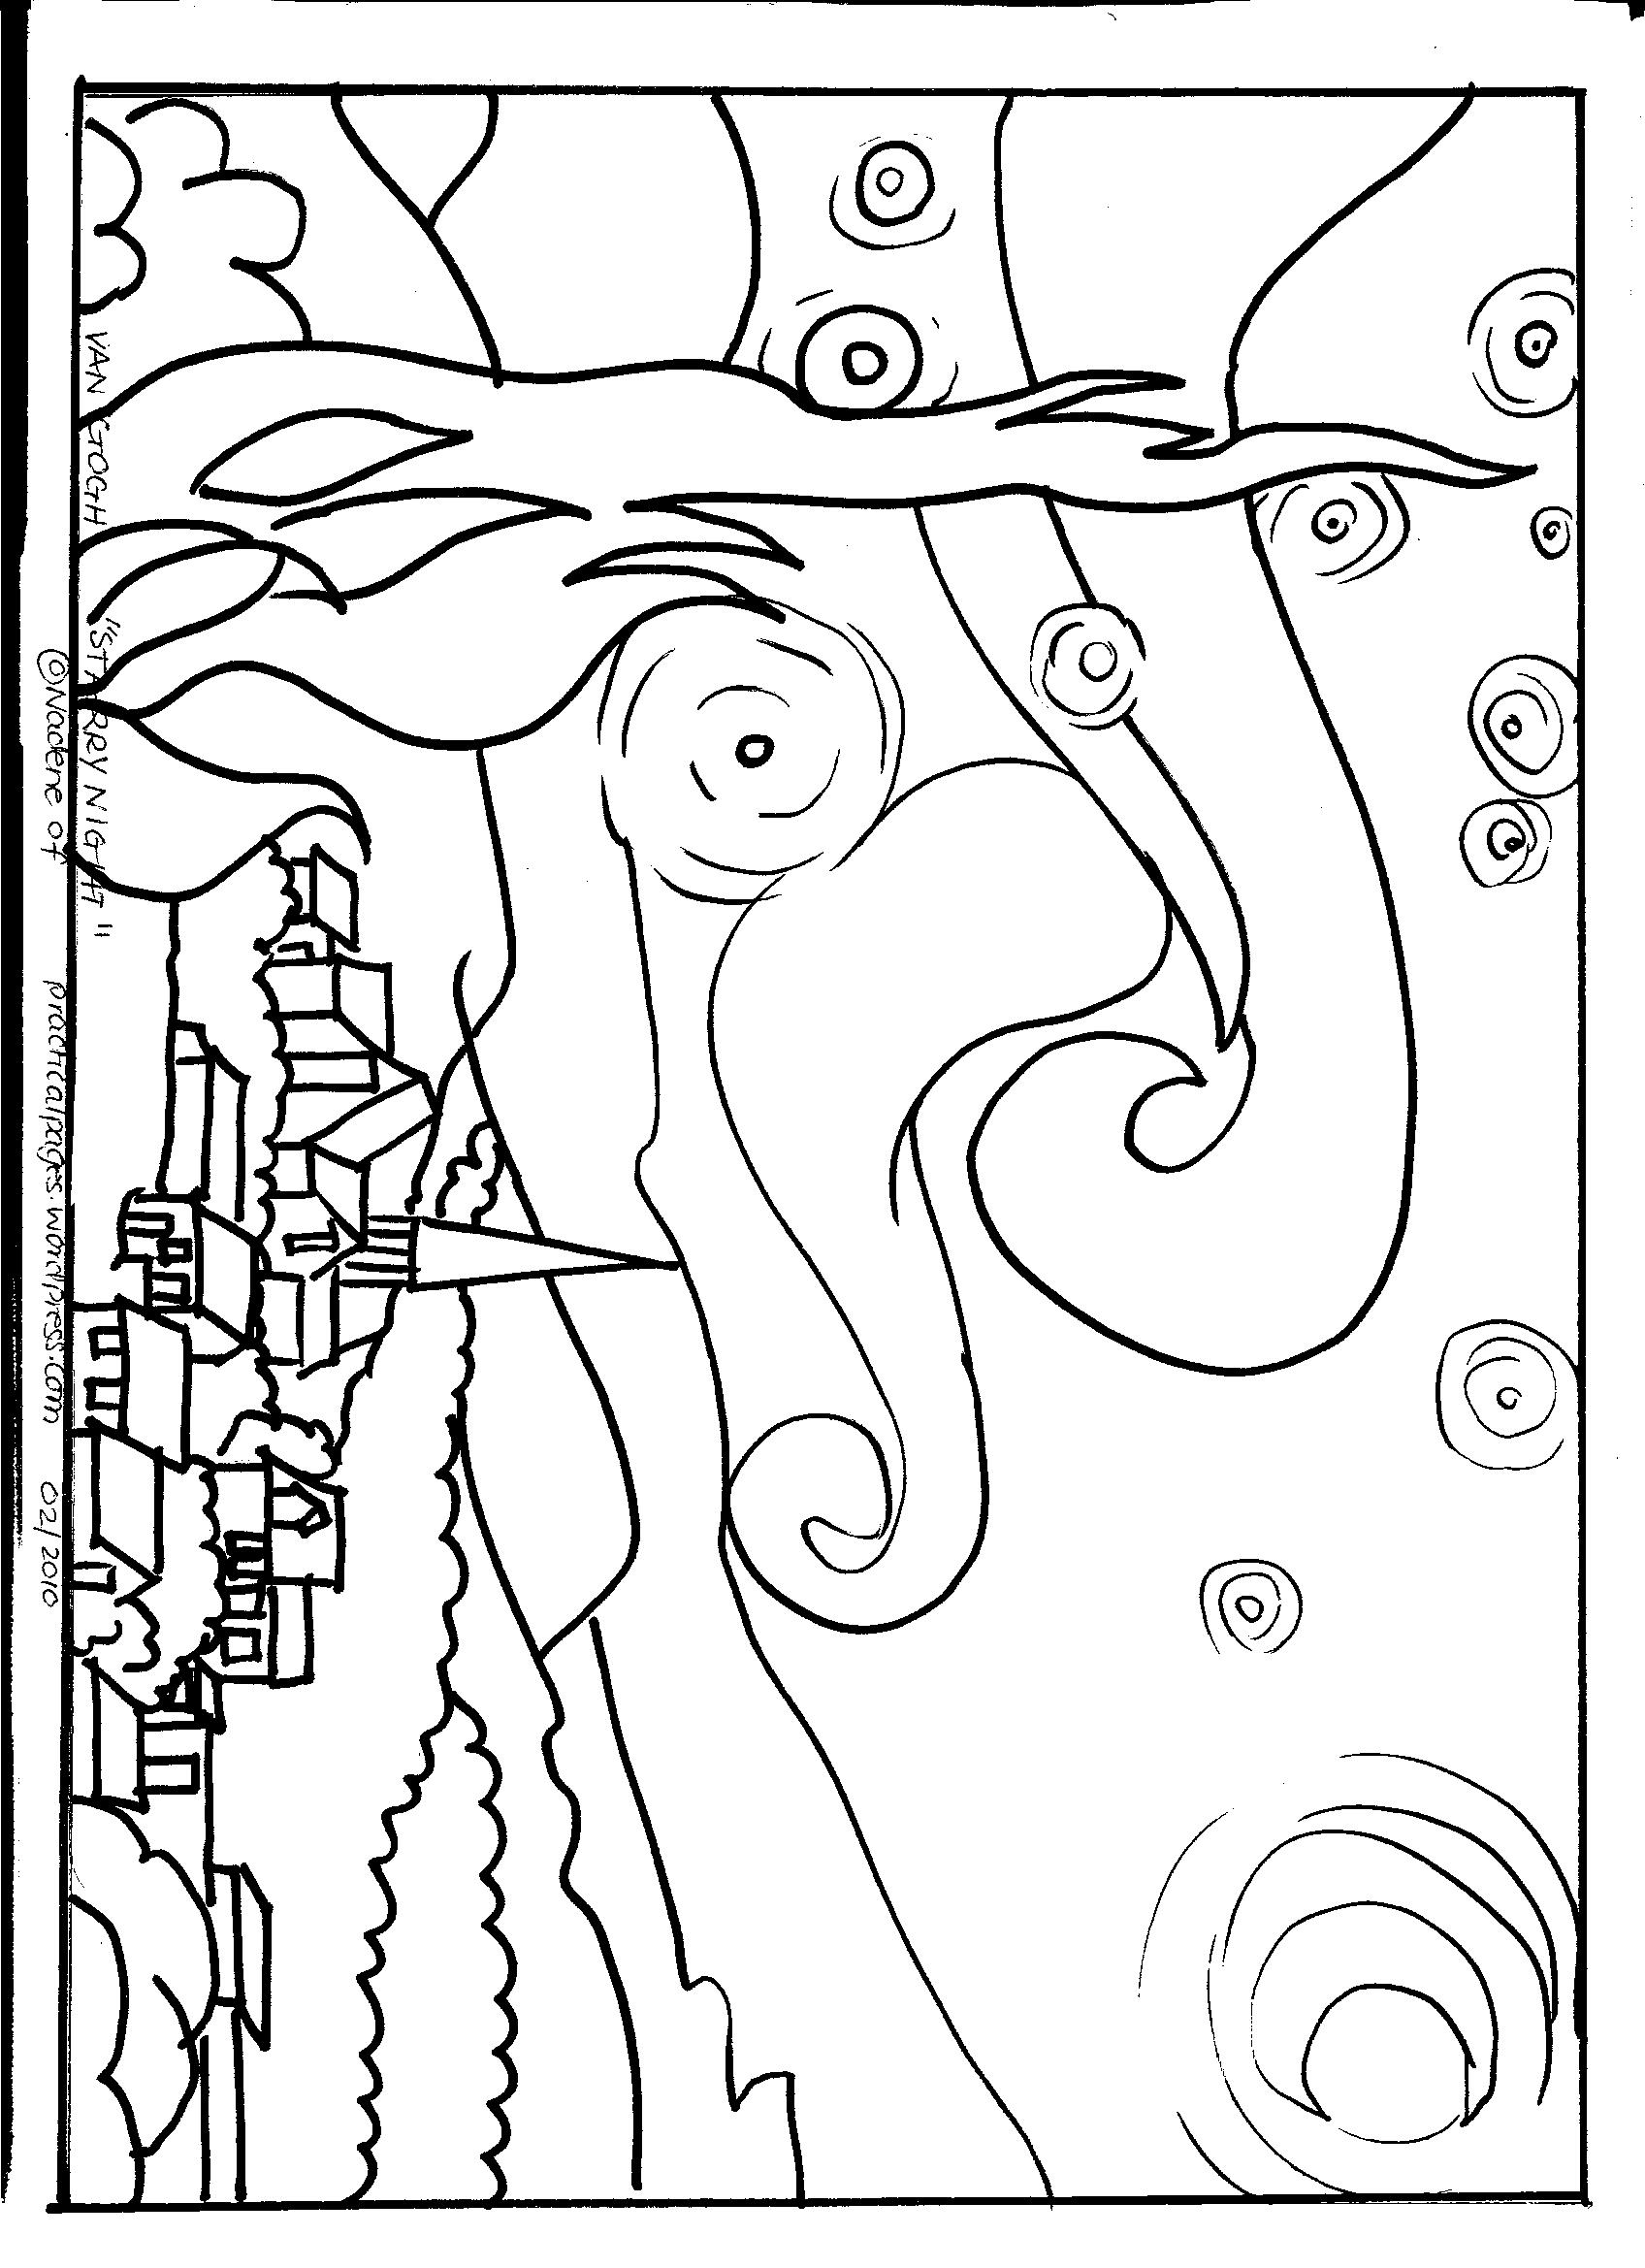 tracing coloring pages - photo#41